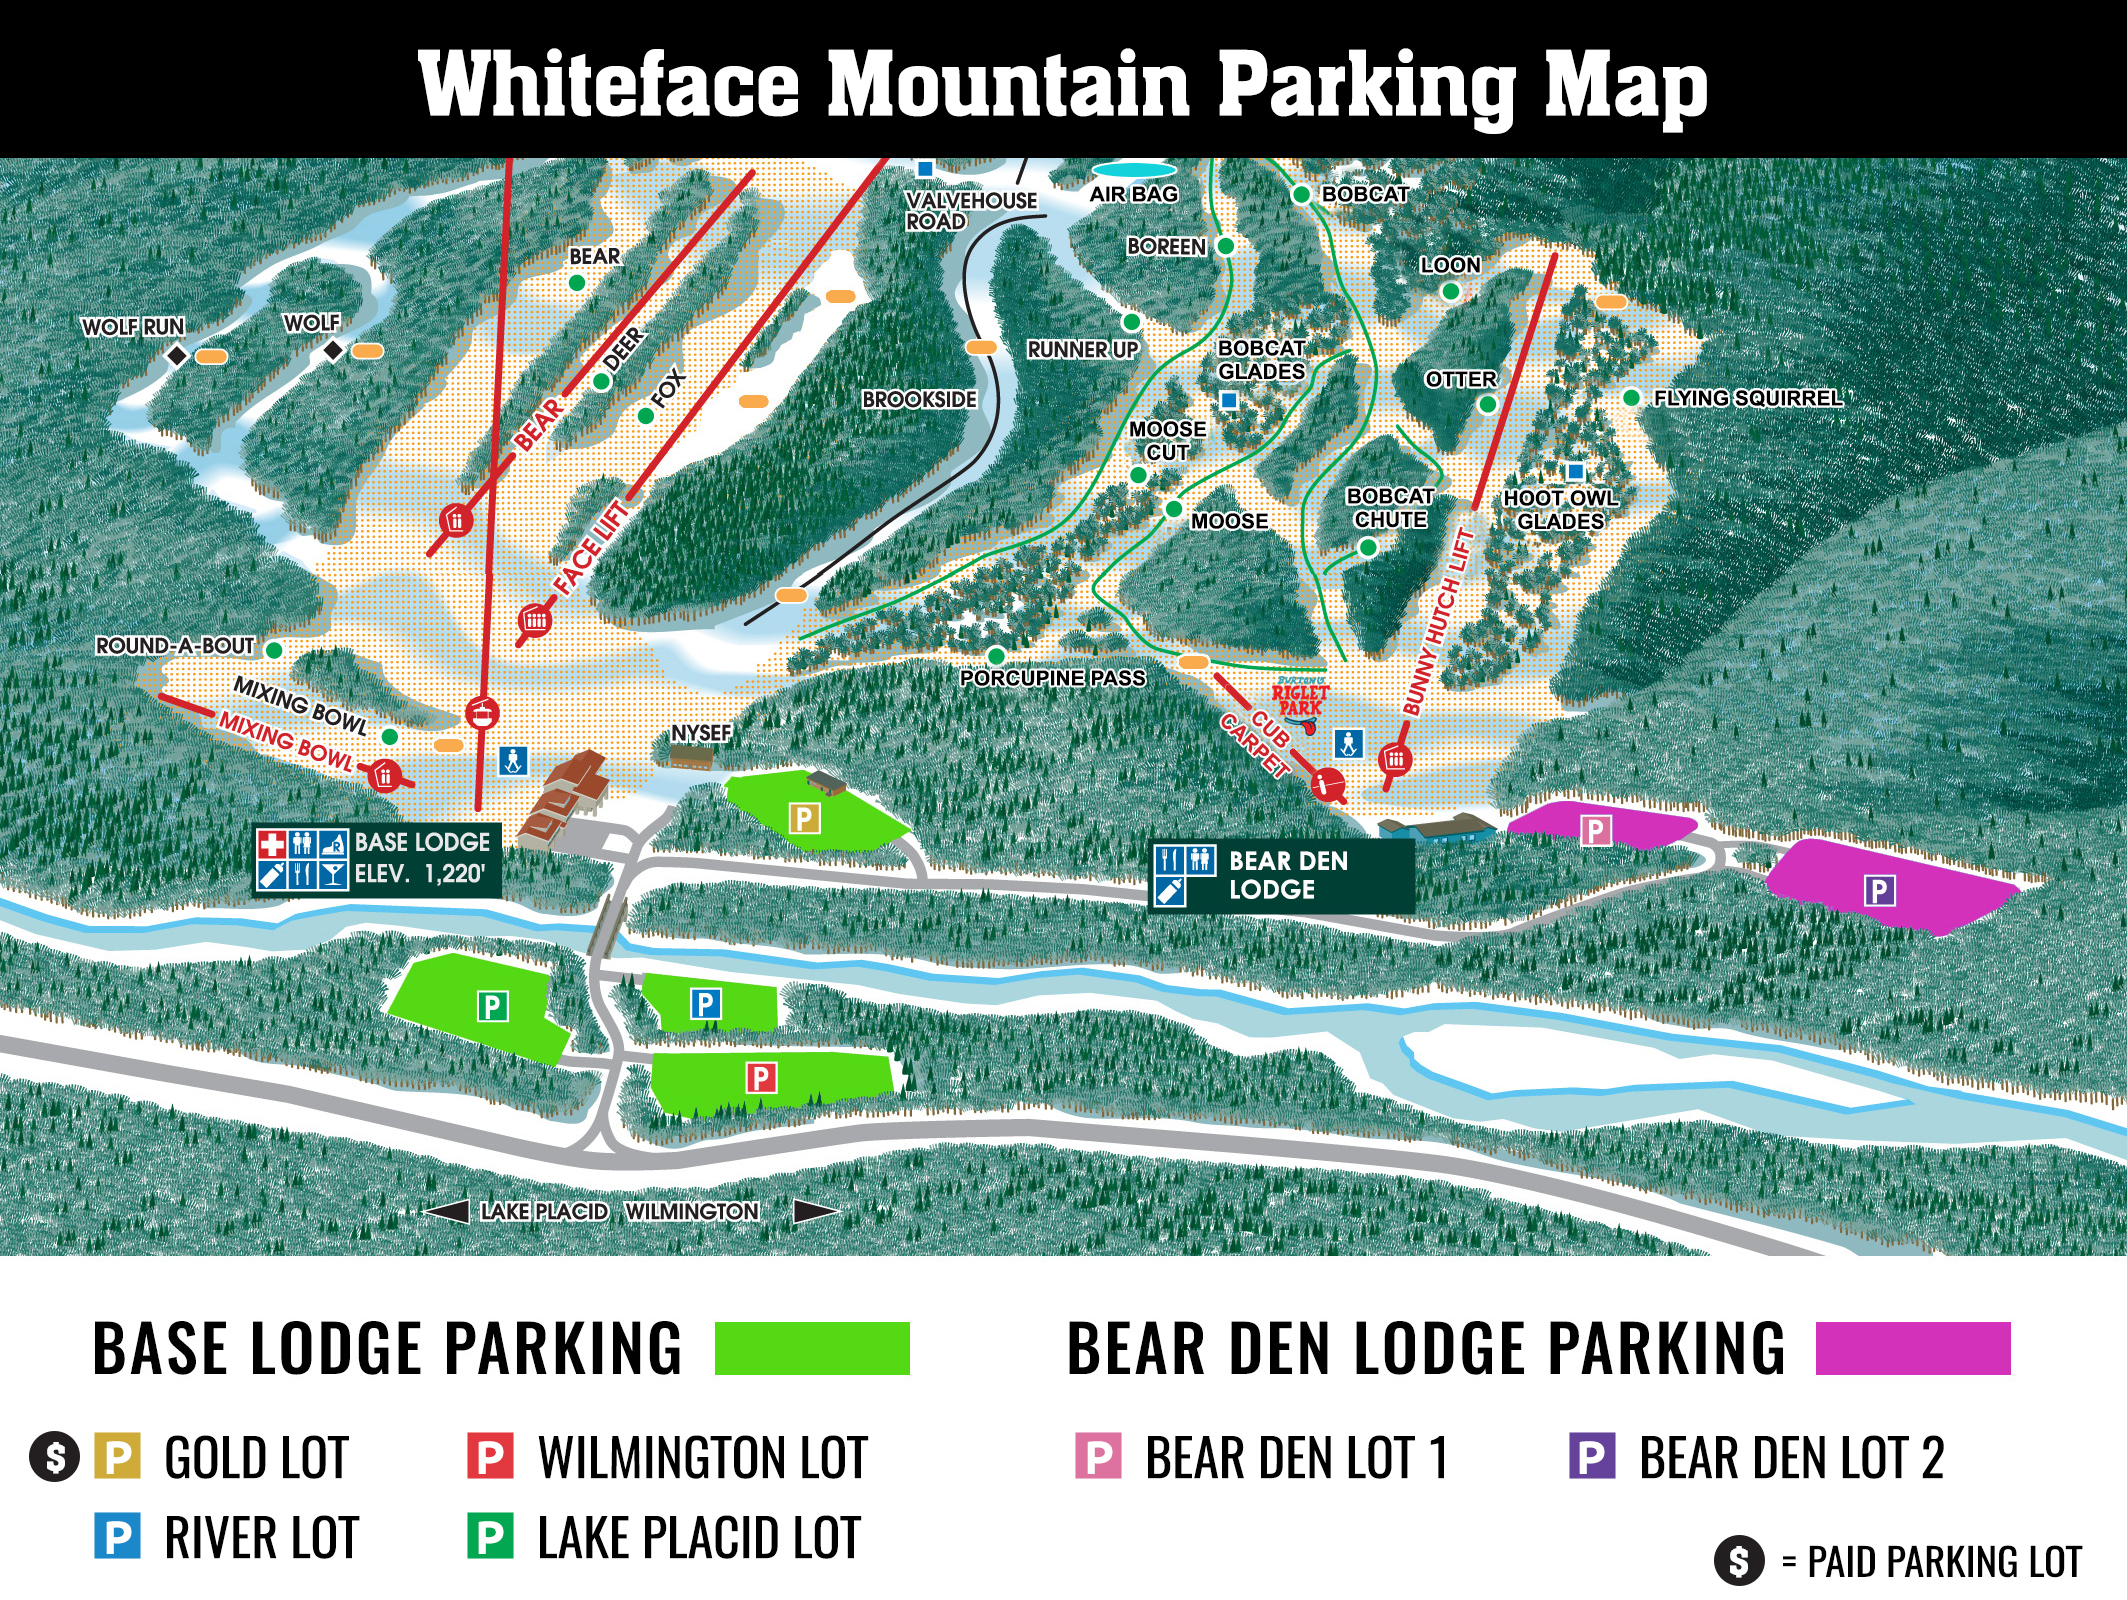 Whiteface Mountain Parking Map